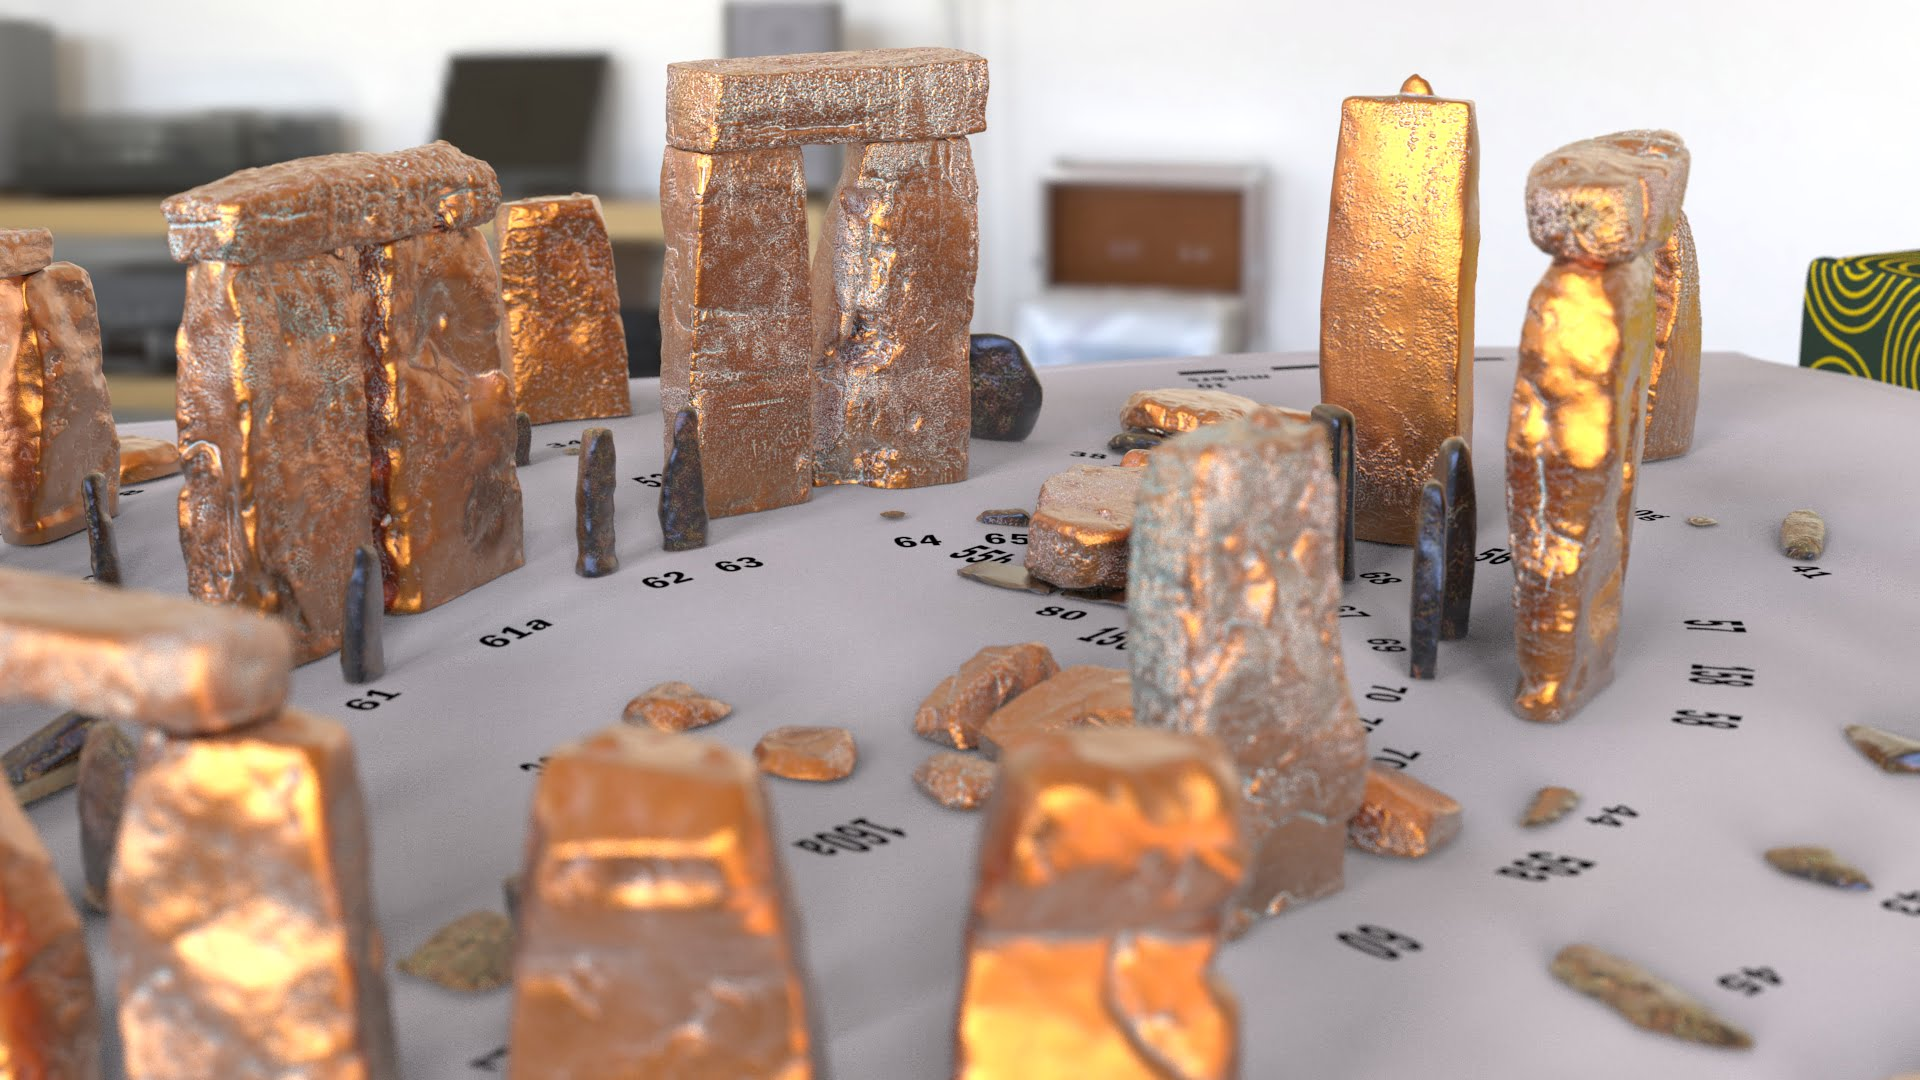 Buy Stonehenge Models: Verdigris copper Stonehenge replica models at 200th scale on plain white map with numbered stones accurate and highly detailed 009  - 200th scale pick n mix -